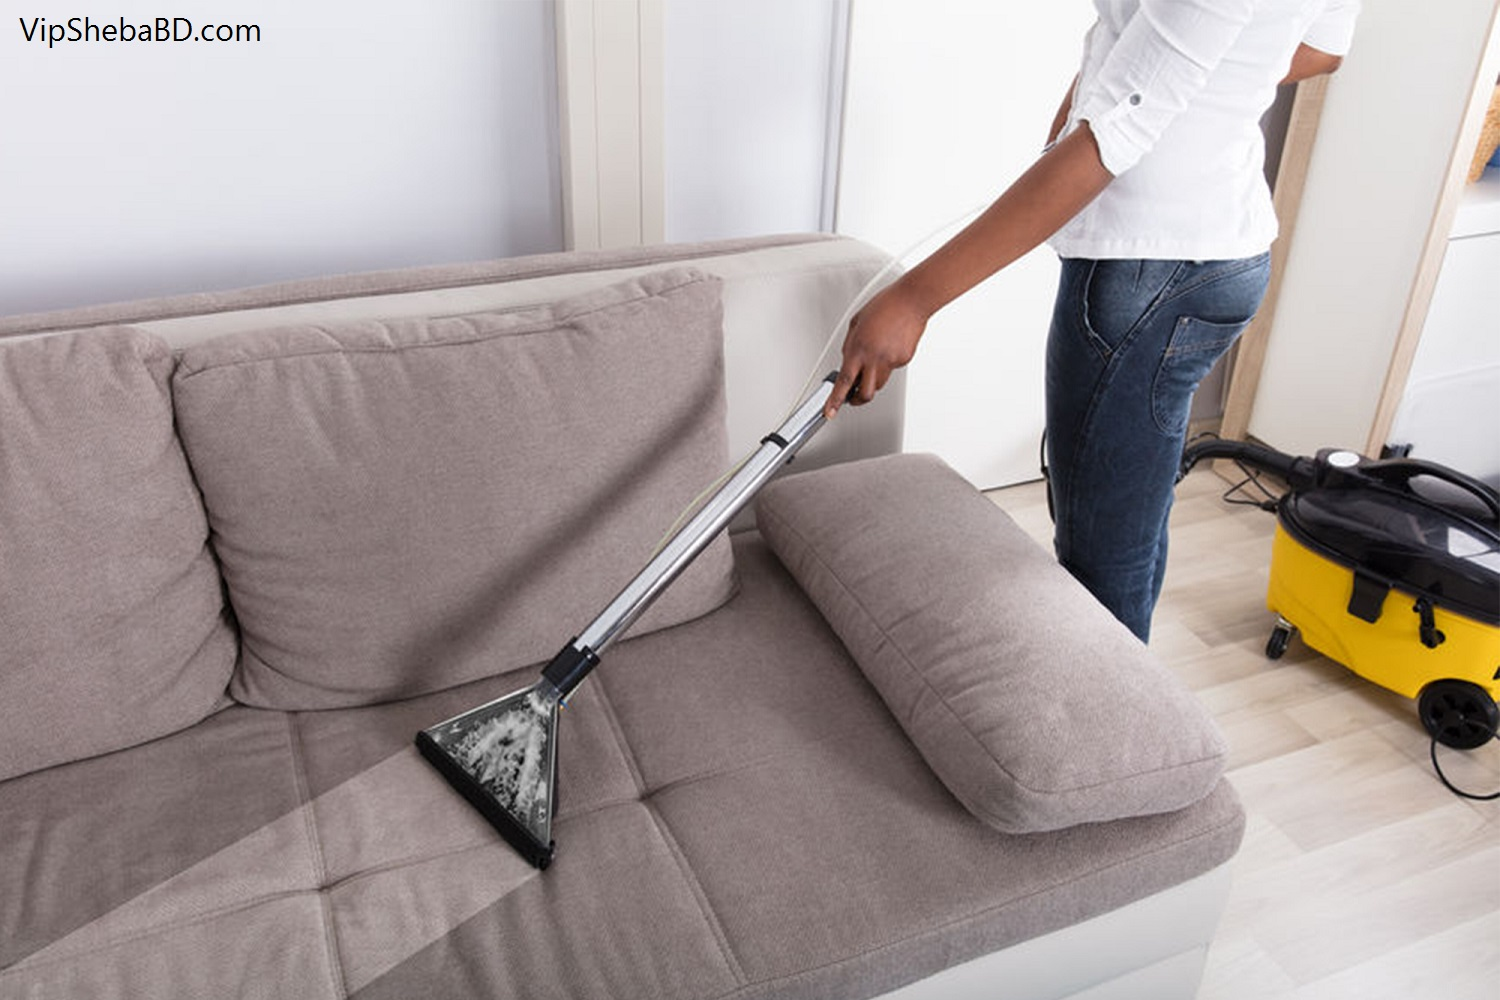 Sofa cleaning service in Dhaka